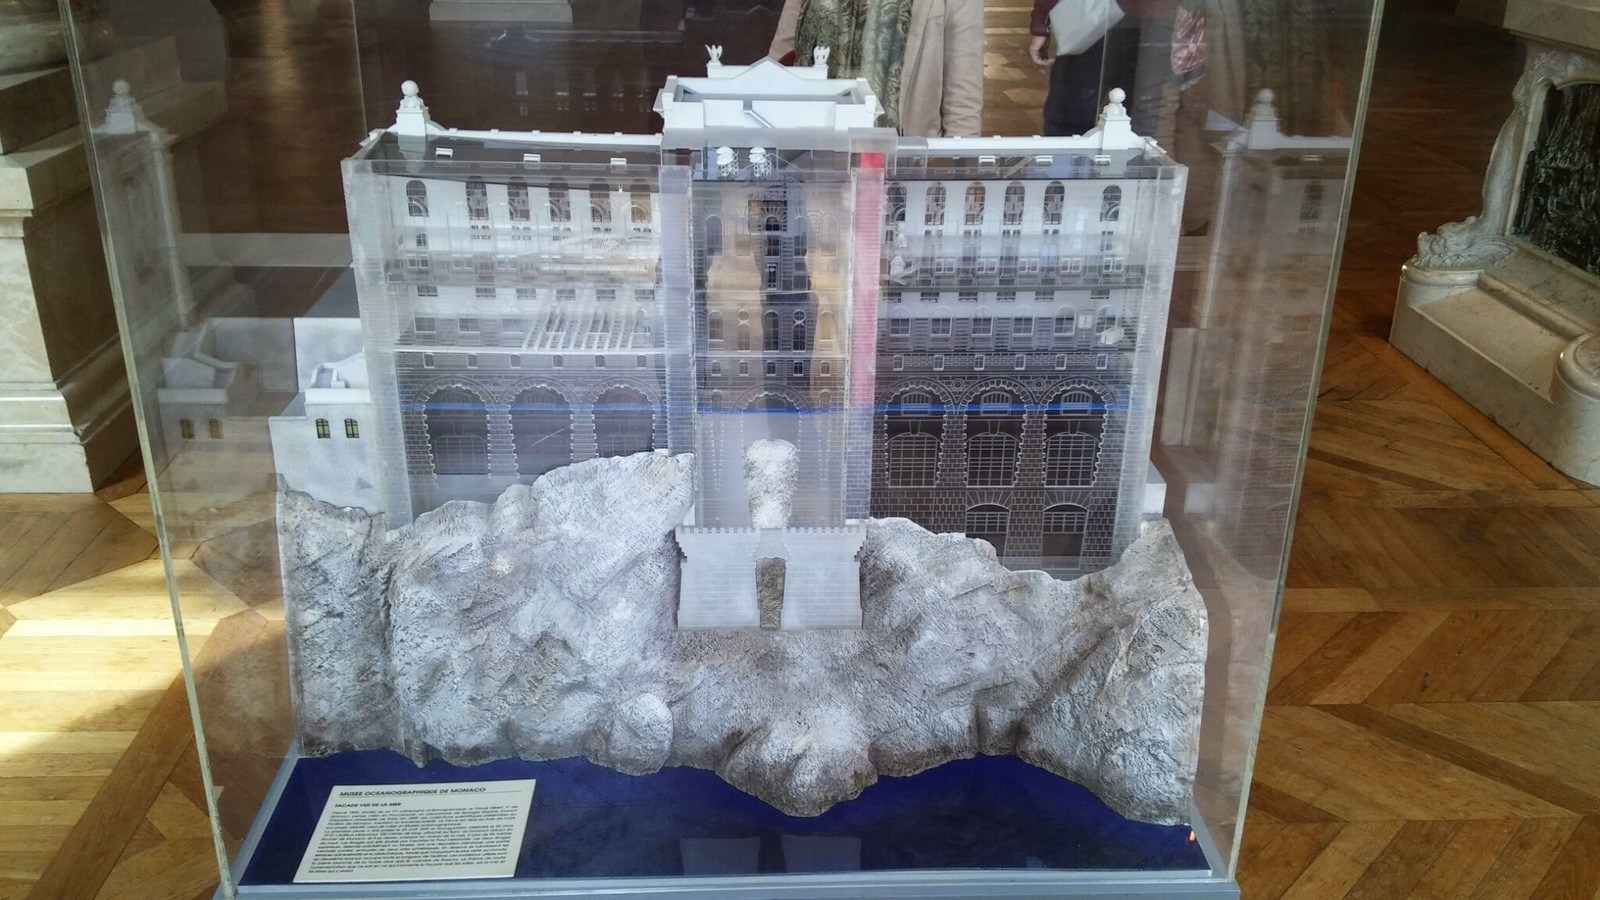 Model of the Aquarium from the sea